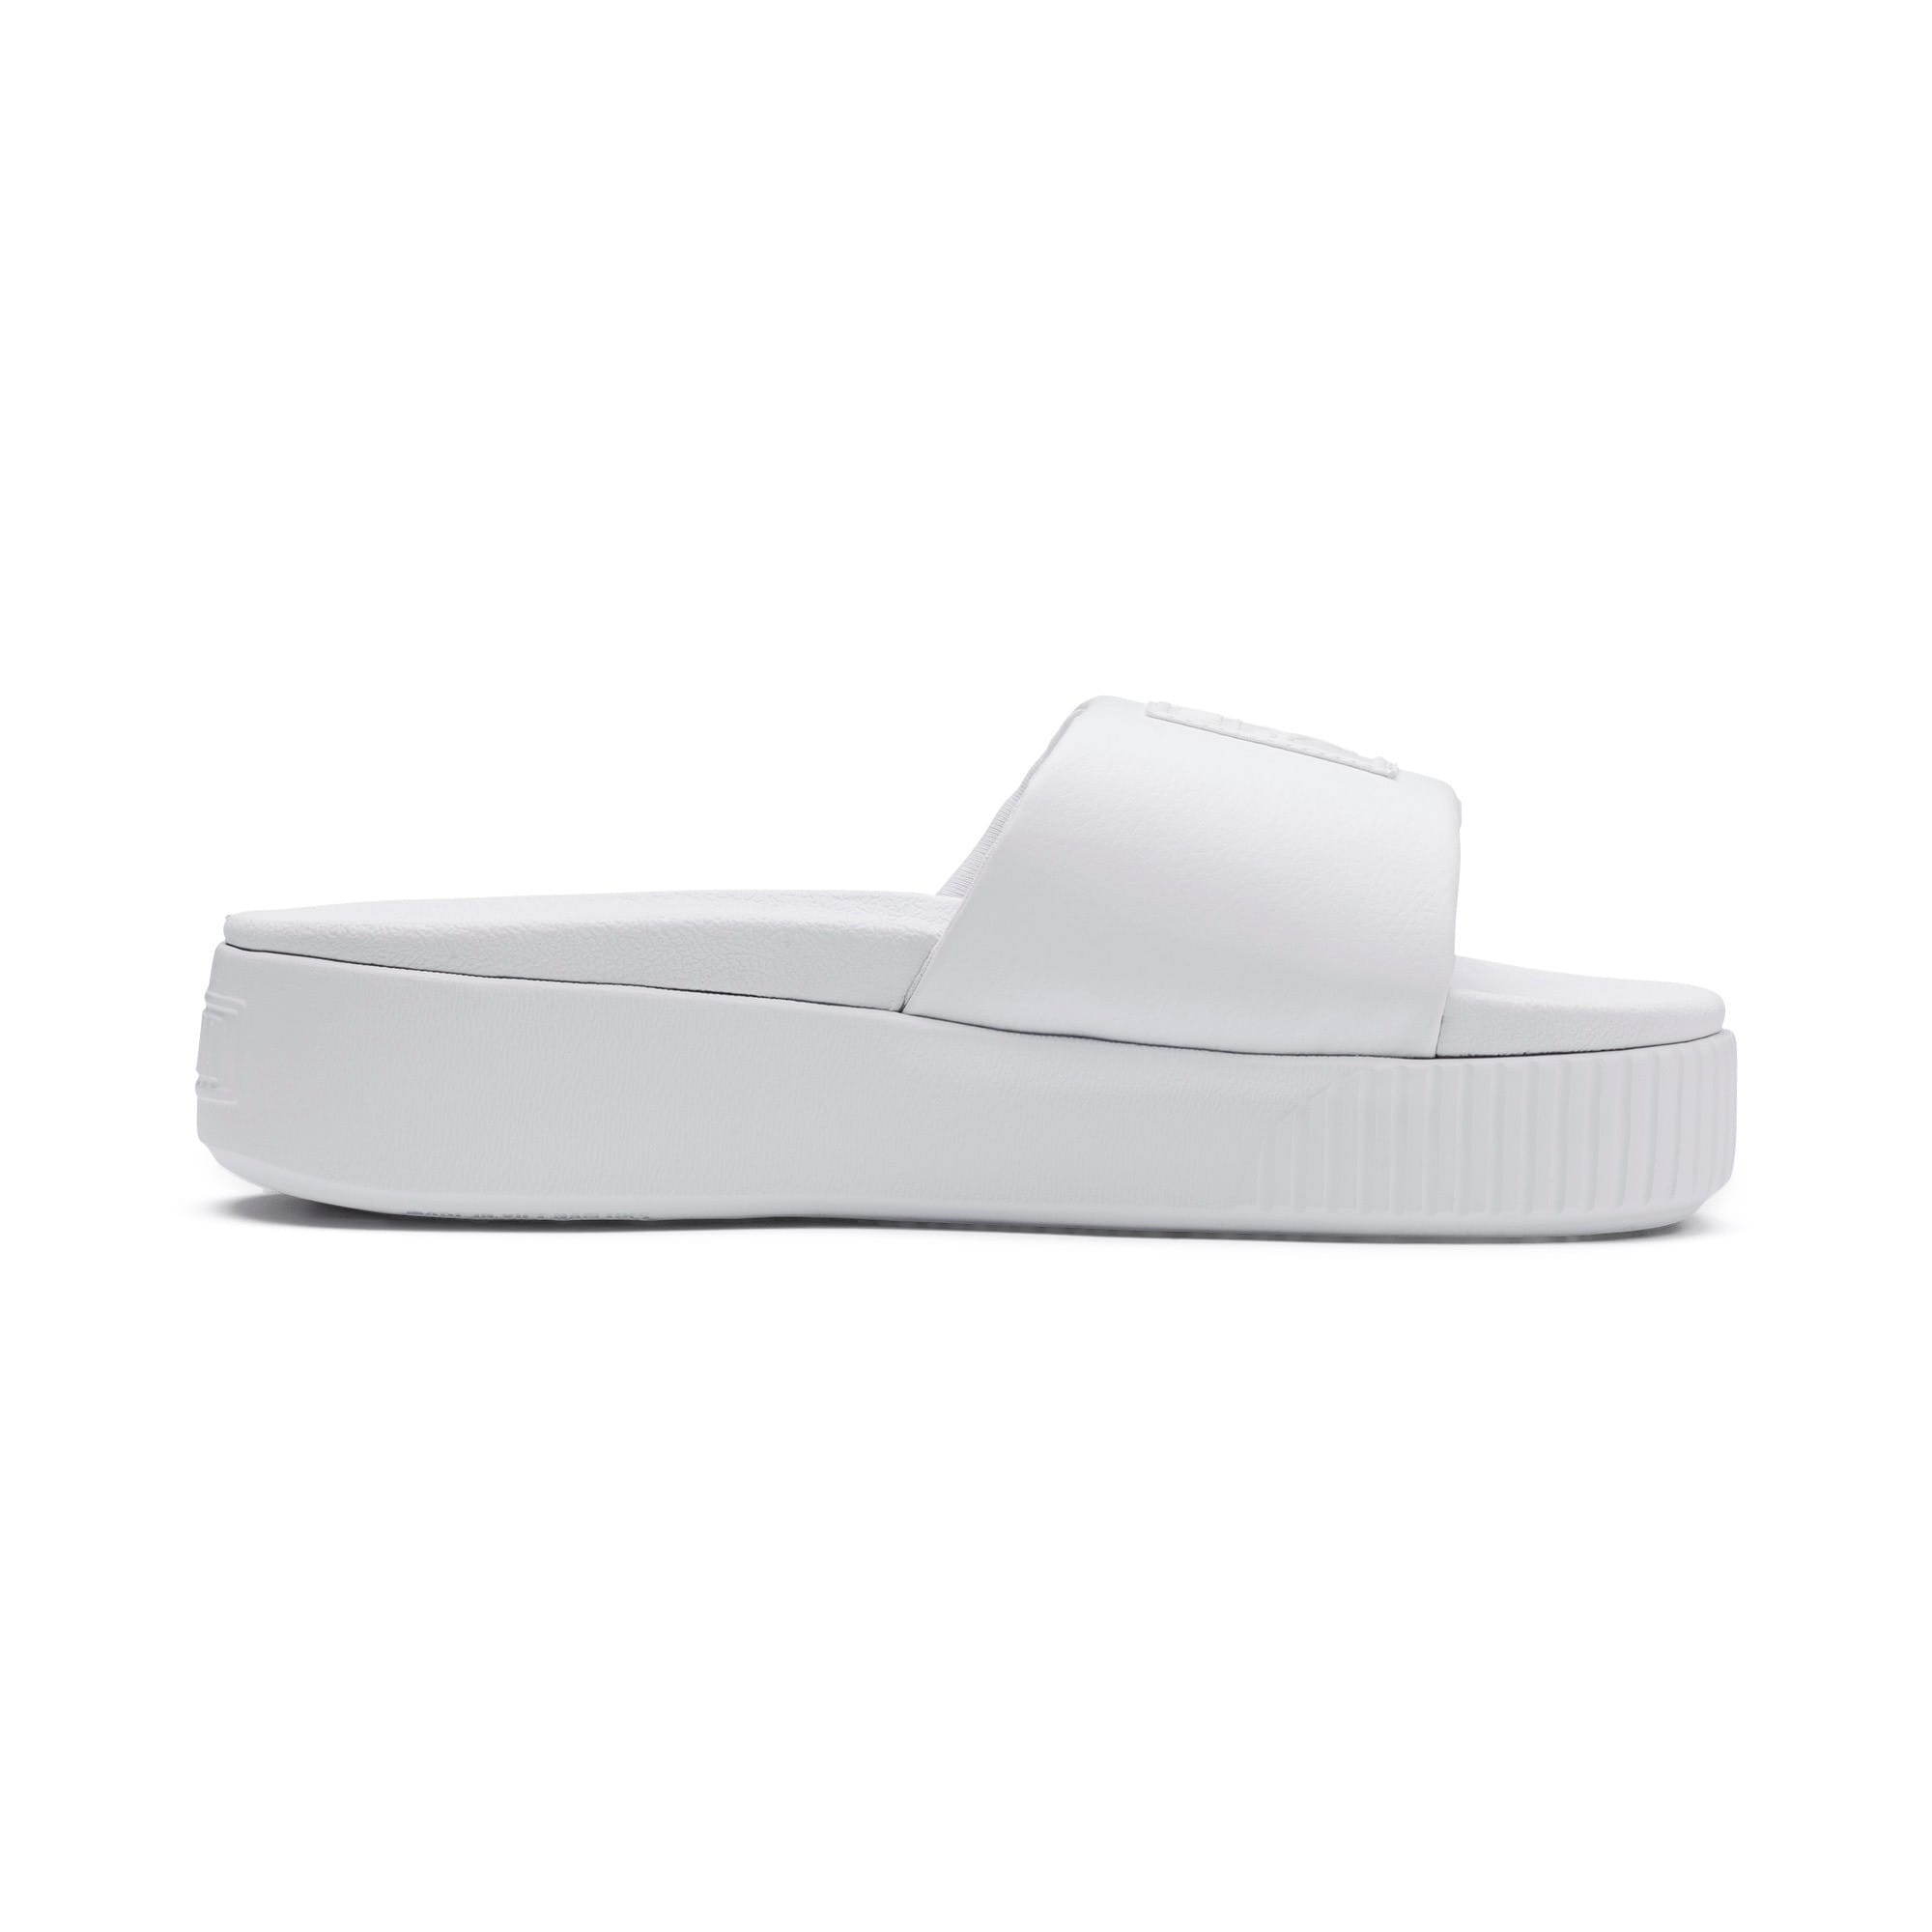 Thumbnail 5 of Platform Slide Women's Sandals, Puma White-Puma White, medium